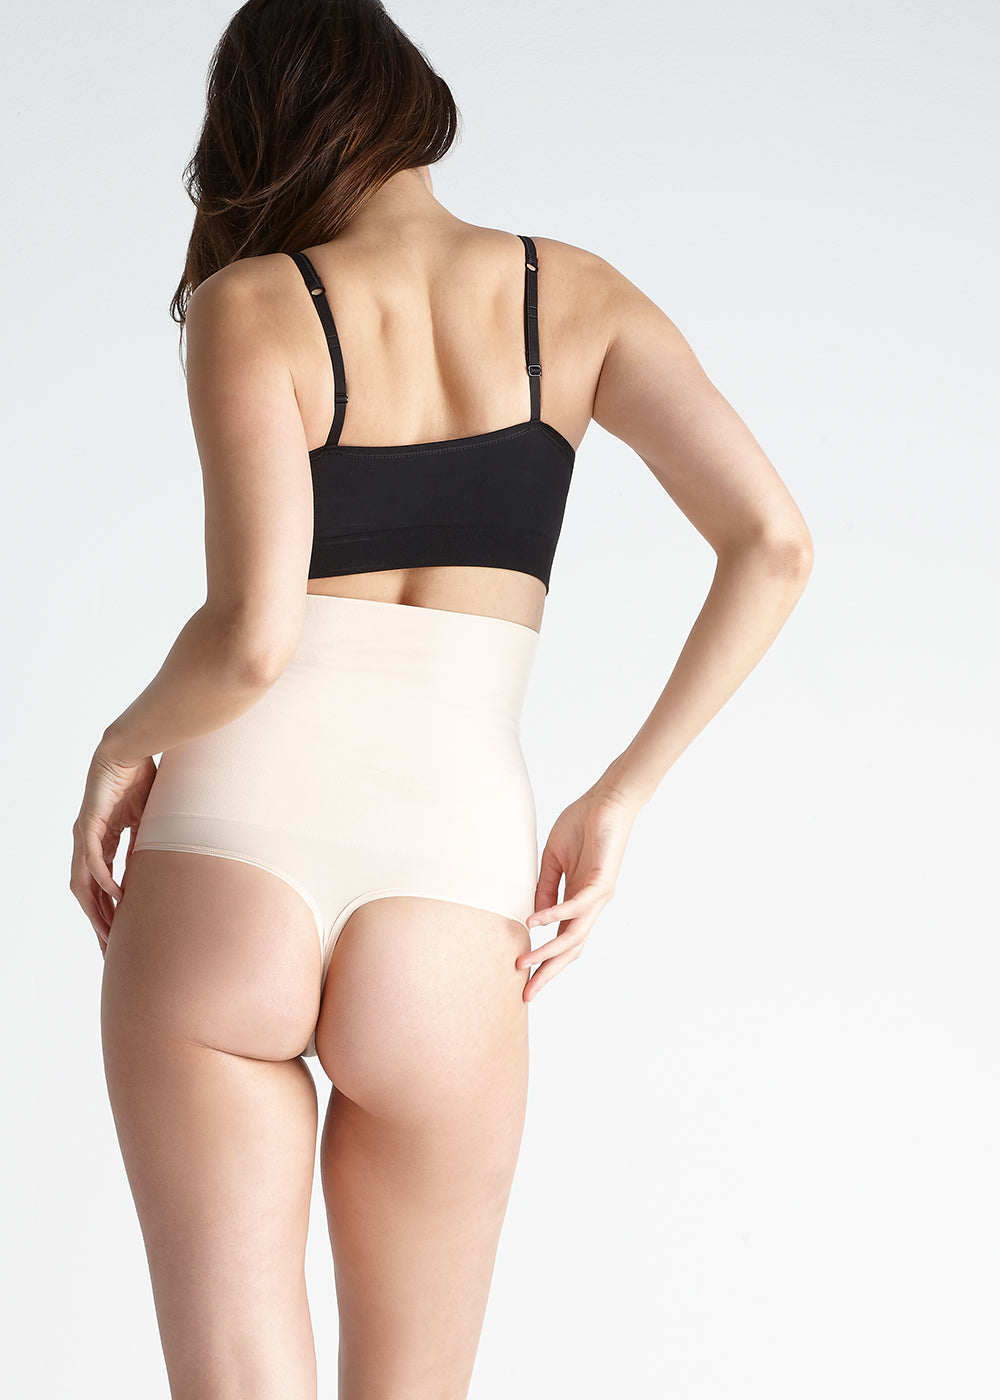 ea5b27bd76c81 Danielle InShapes High Waist Shaping Thong